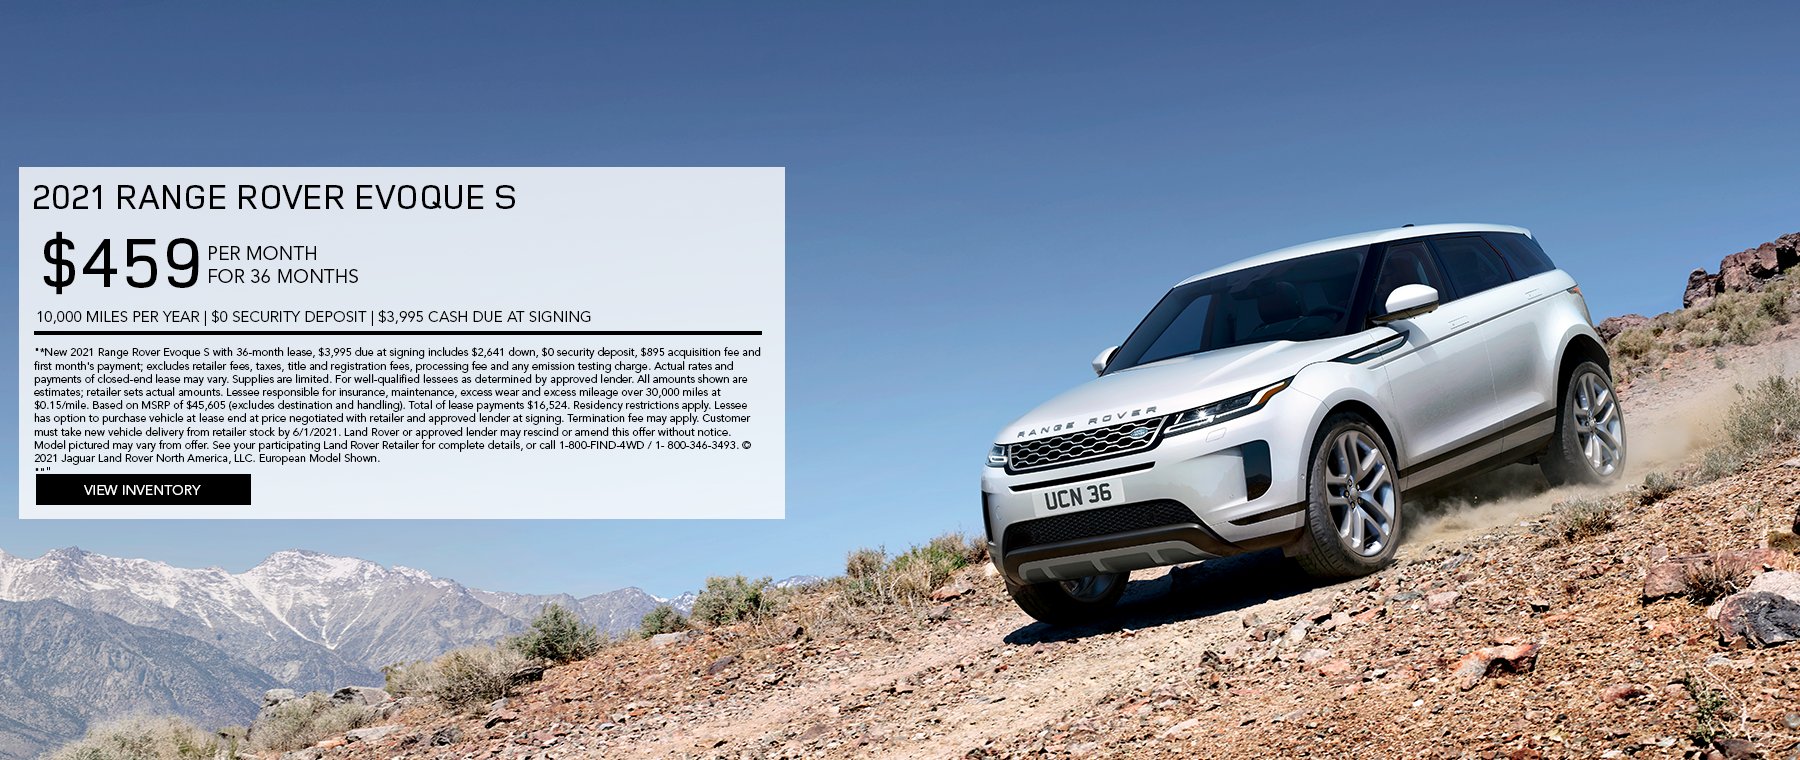 May 2021 Evoque